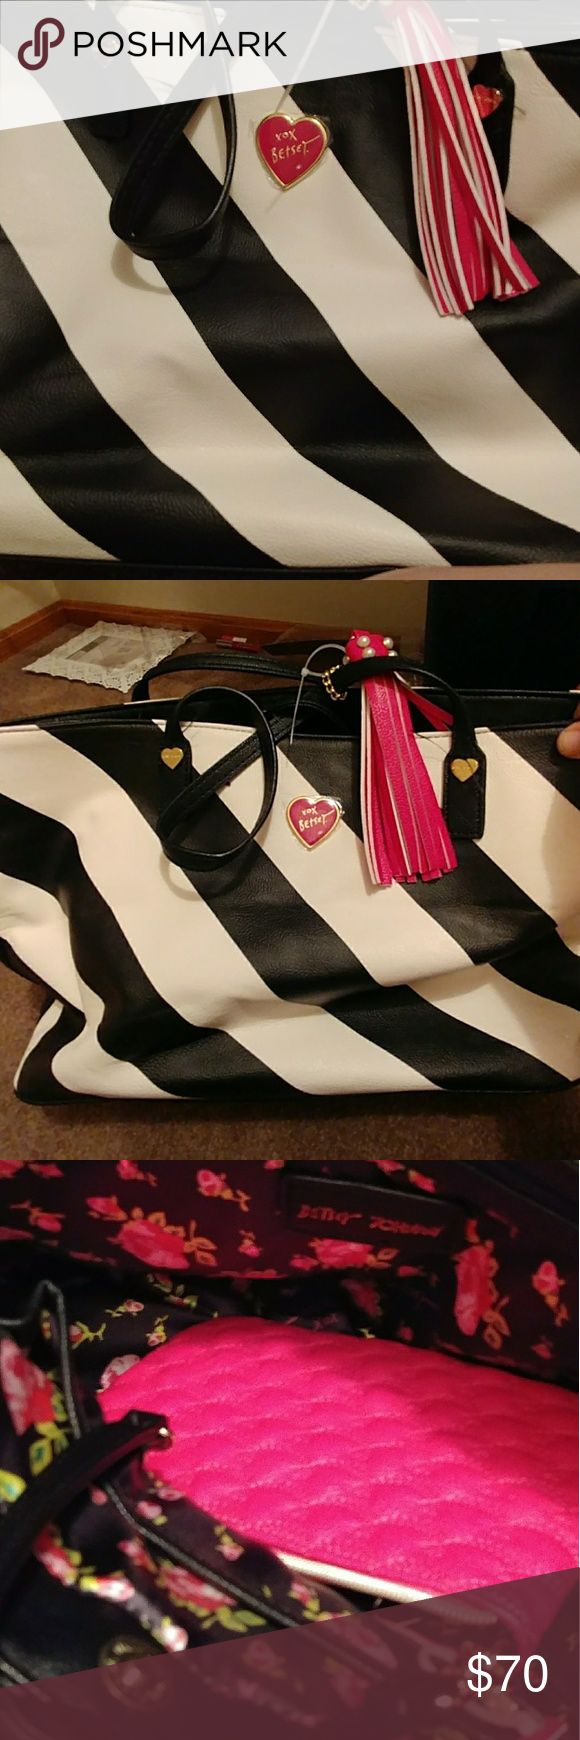 Brand new Betsey Johnson striped tote Brand new but the tag fell off.  Retails for over 100 dollars. Smoke free home. Cute black and white striped tote Betsey Johnson Bags Shoulder Bags